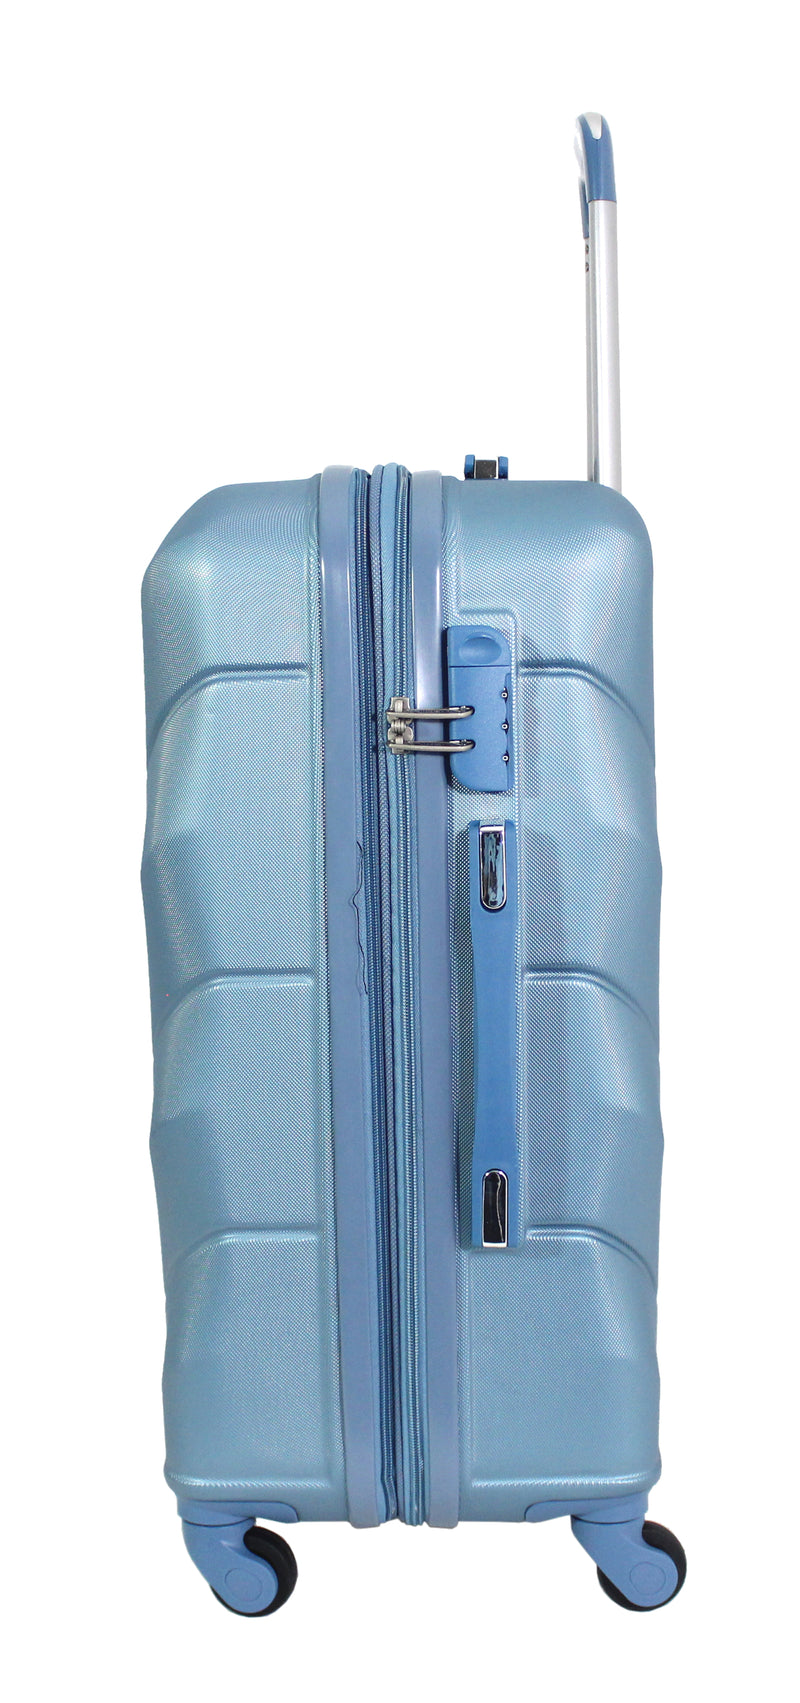 "Alistair ""Iron"" - Valise Taille Moyenne 65cm - Abs Ultra Légère - 4 Roues - Bleu"